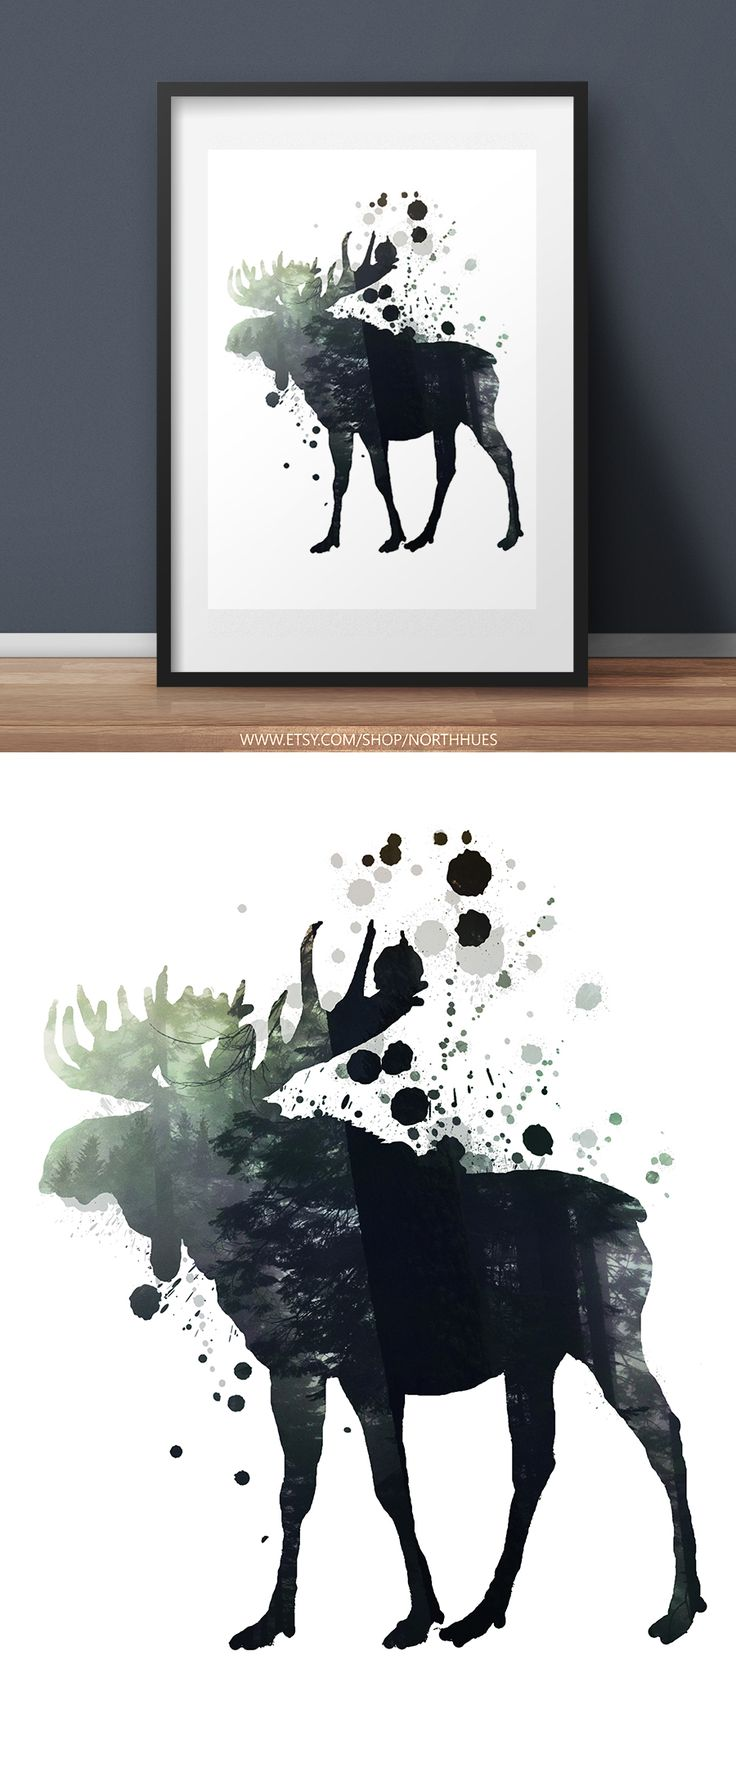 Moose Poster Design. Digital Download. Soon available in physical copies! https://www.etsy.com/no-en/listing/536368381/moose-poster-paint-splatter-double?ref=shop_home_active_13